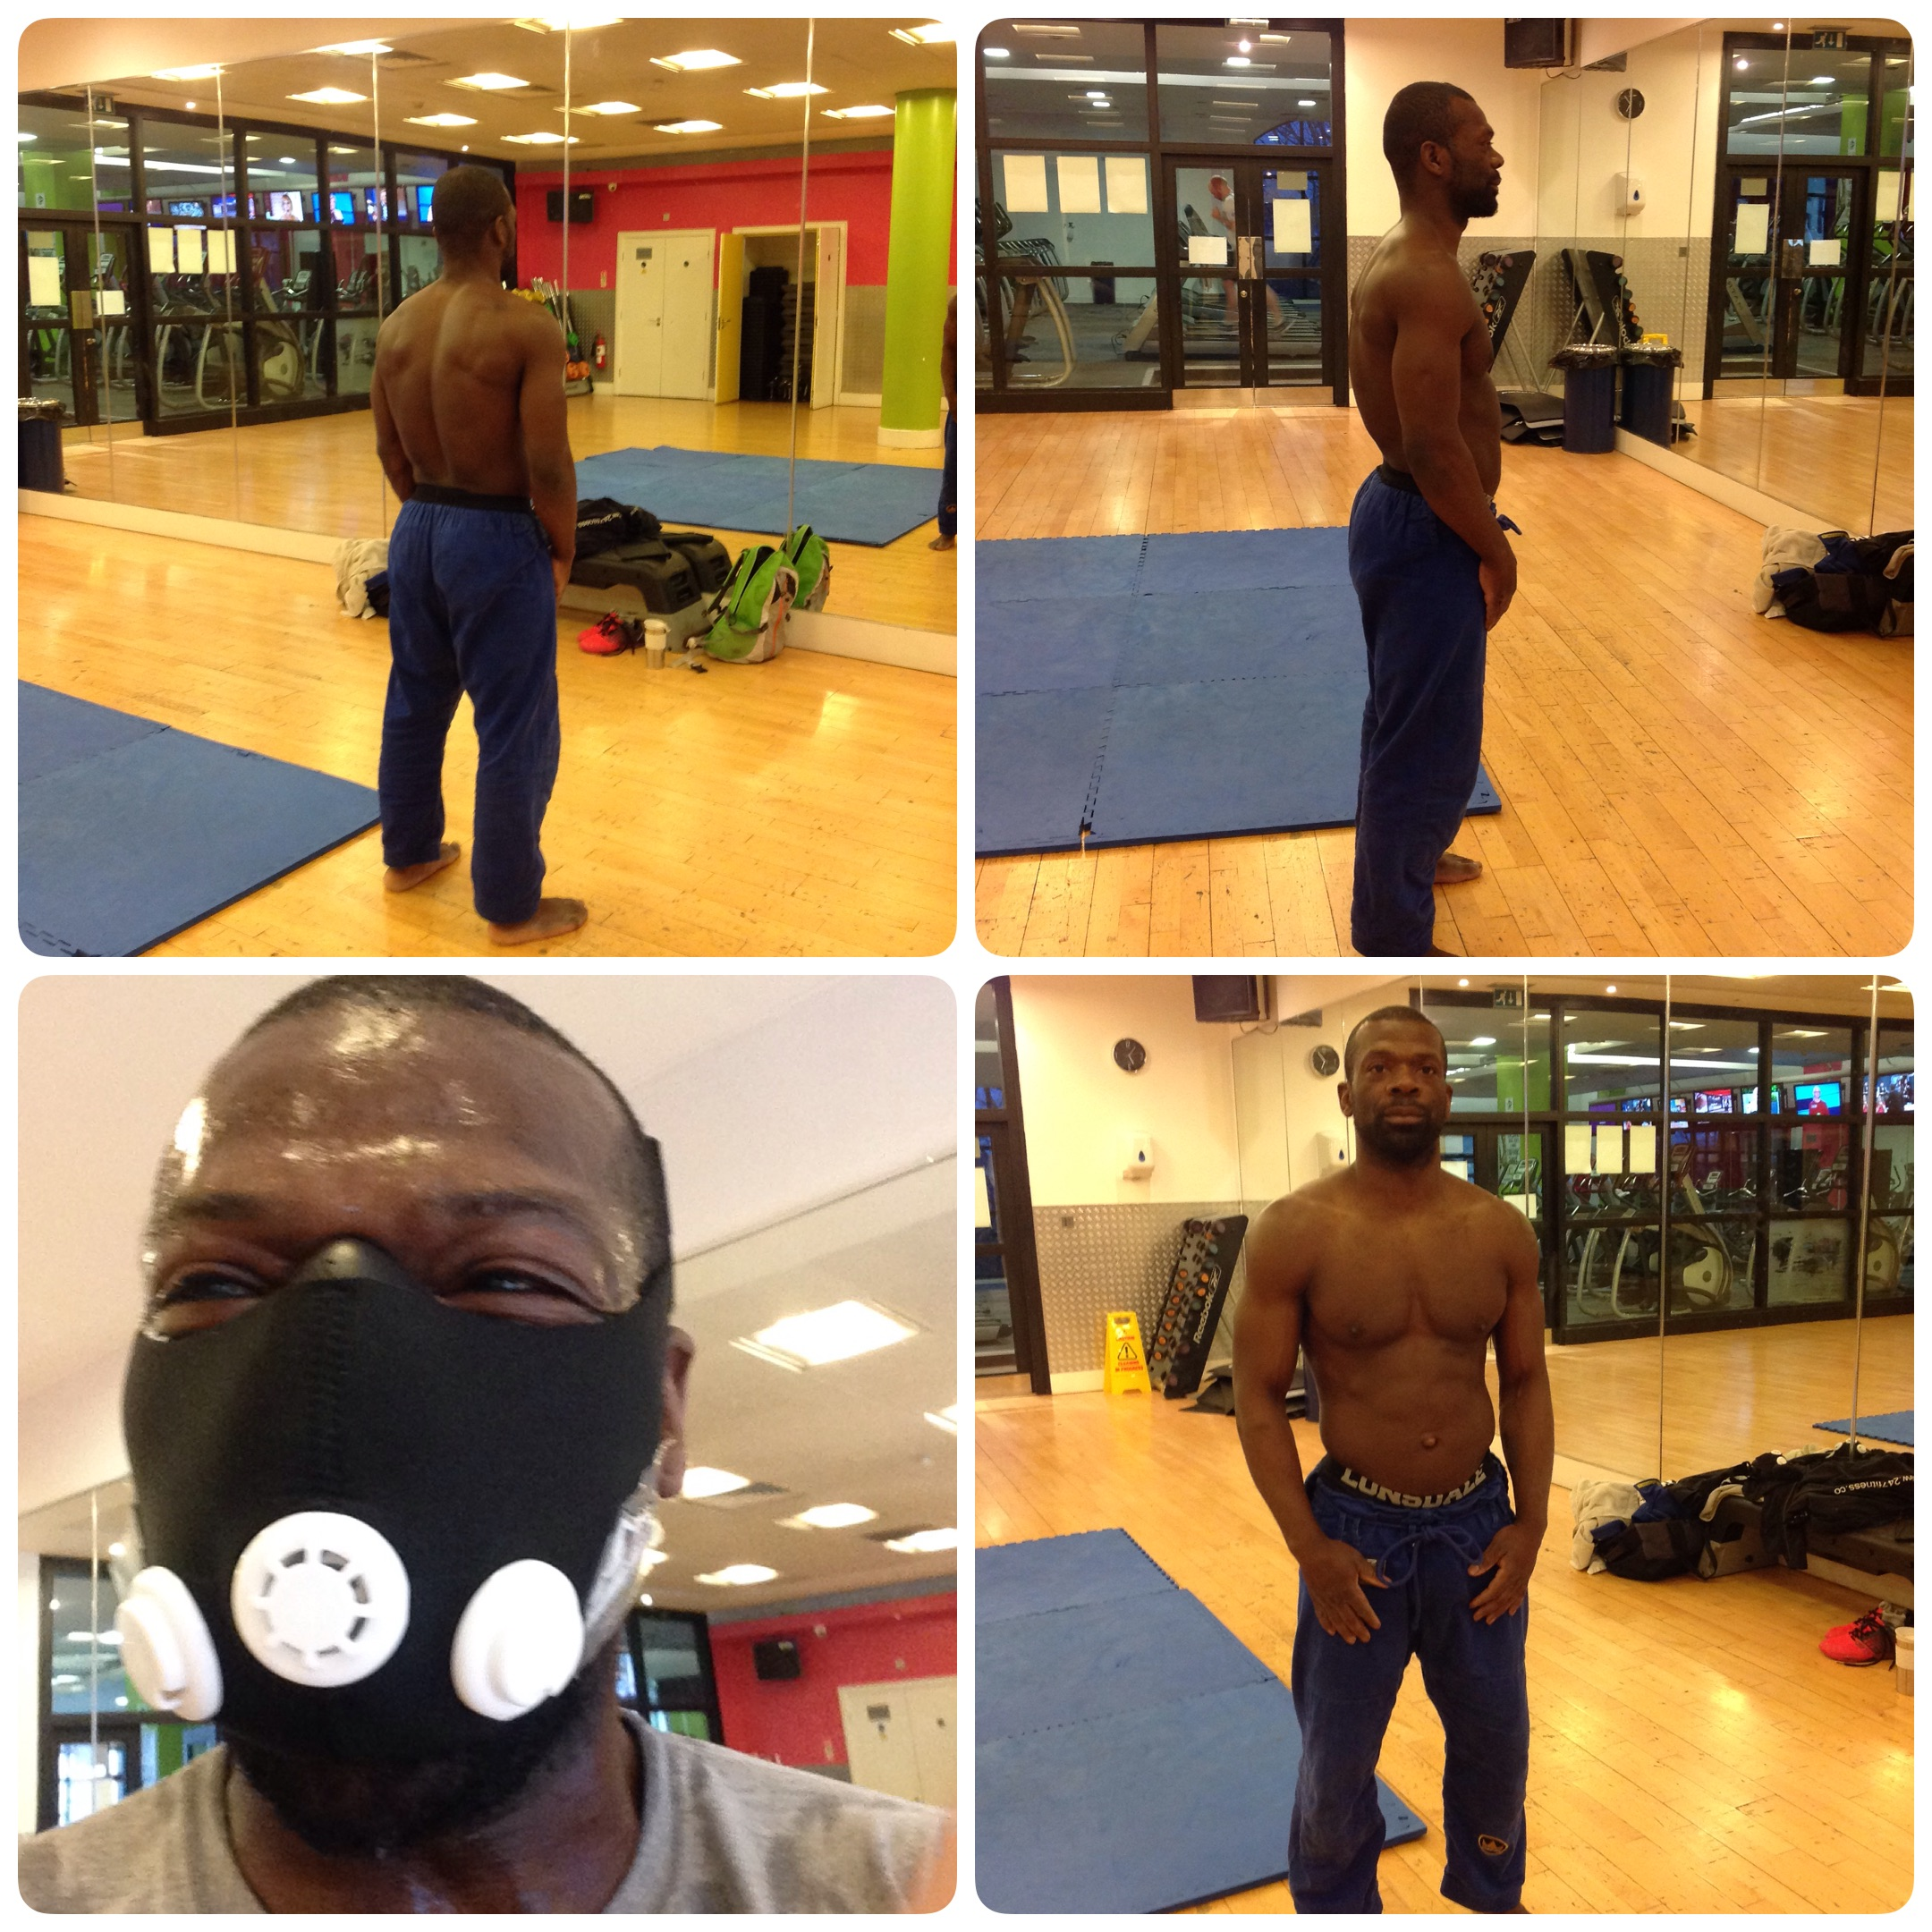 Here I am showing my 2 packs, in normal circumstances I have 4-6. This is what happened when you abuse your mother food. There I am with the altitude mask, I laugh as I start to get used to it and Luke my training partner is knackered...